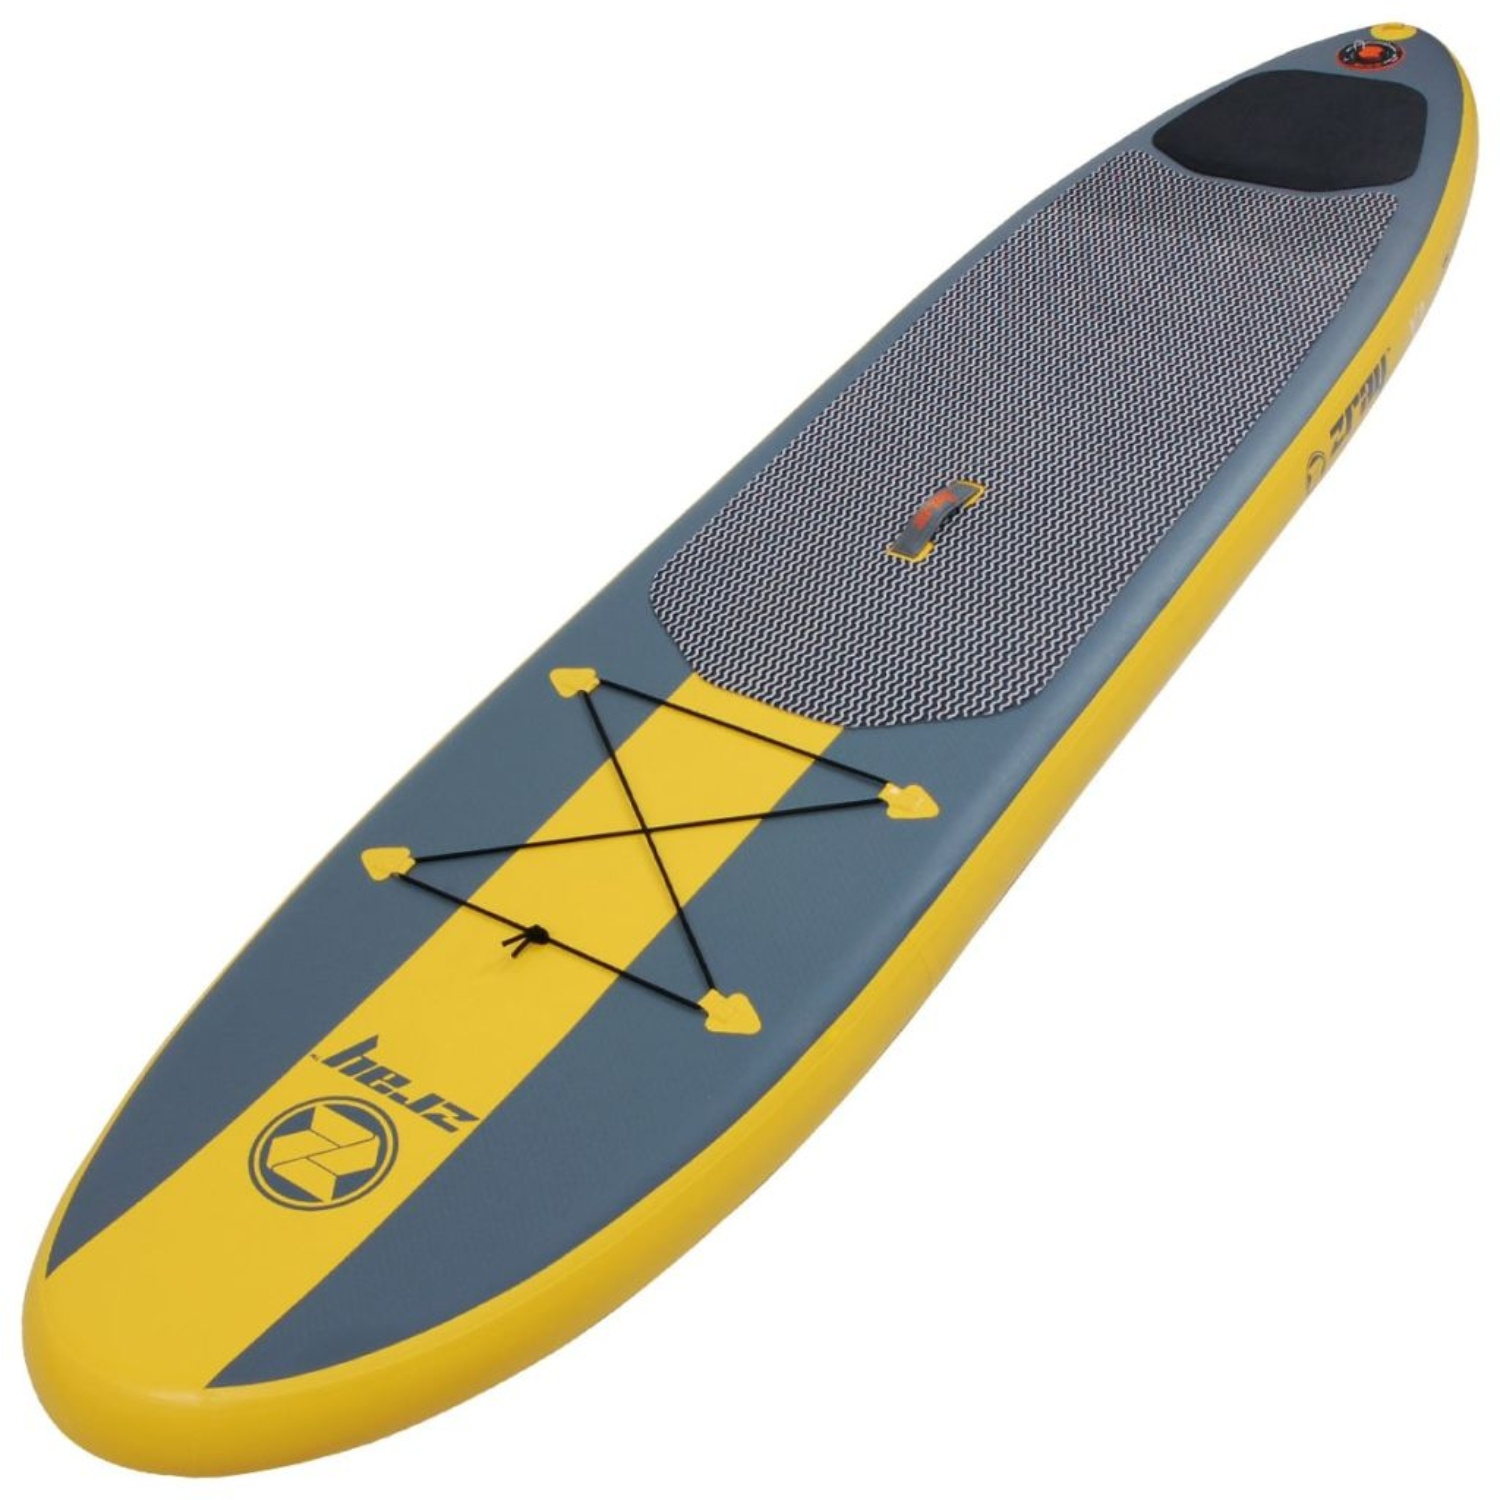 Z-Ray X2 SUP Board 10'10